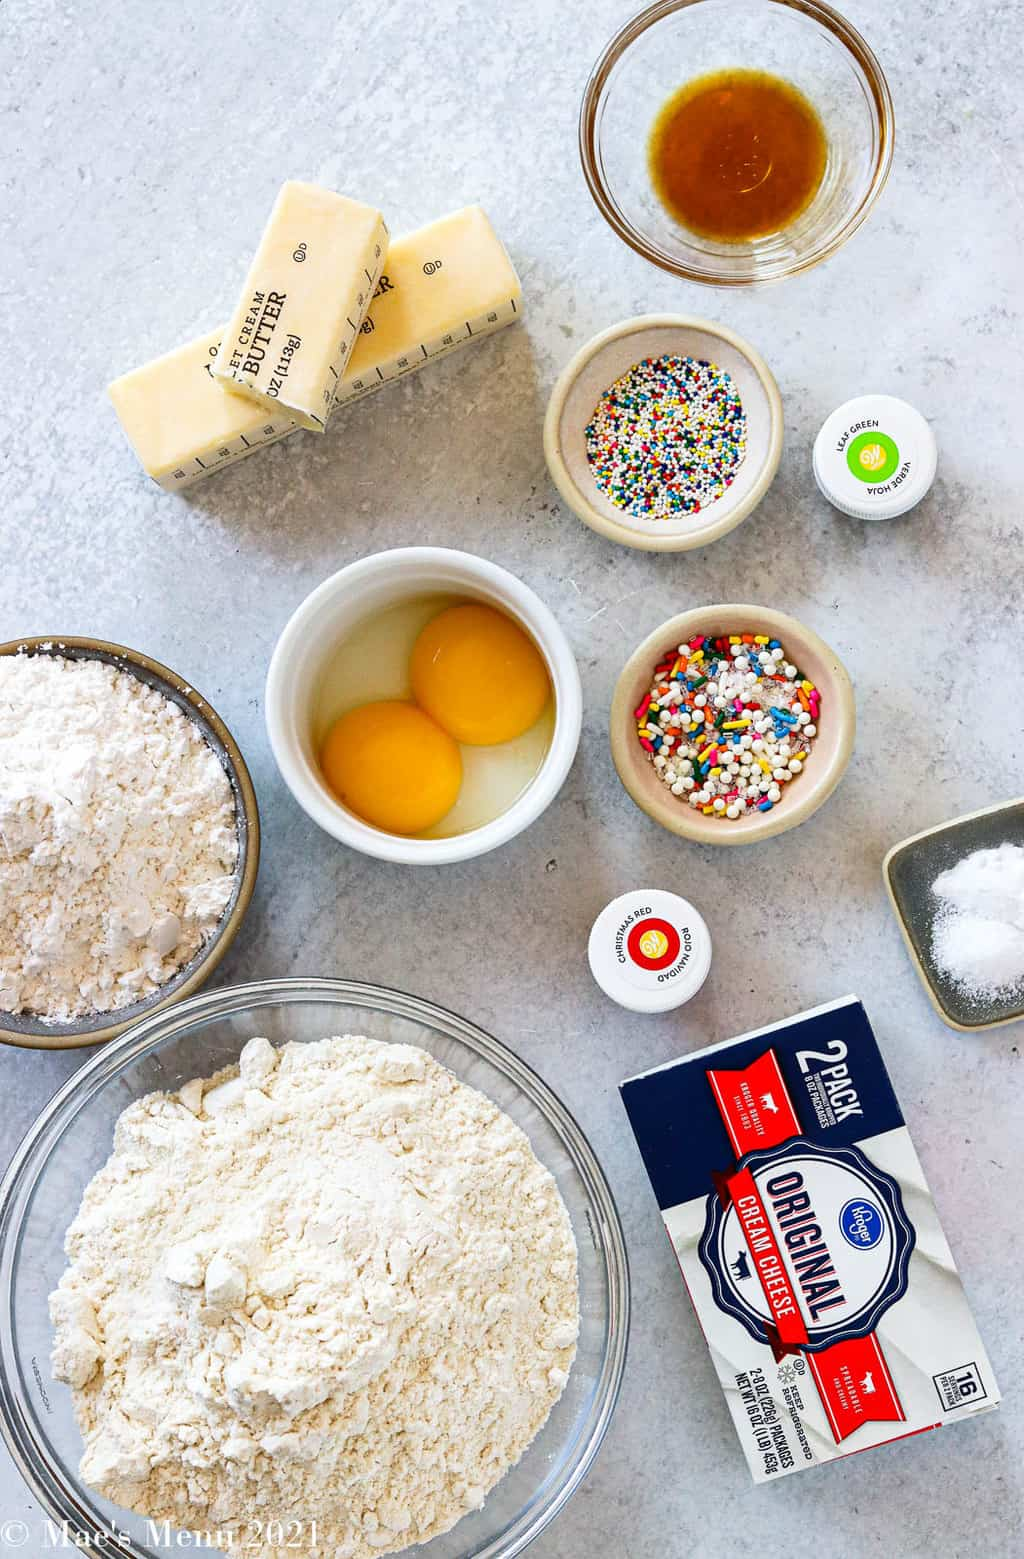 All the ingredients for cream cheese spritz cookies: flour, powdered sugar, egg yolks, cream cheese, sprinkles, butter, vanilla, salt, baking soda, and gel food coloring